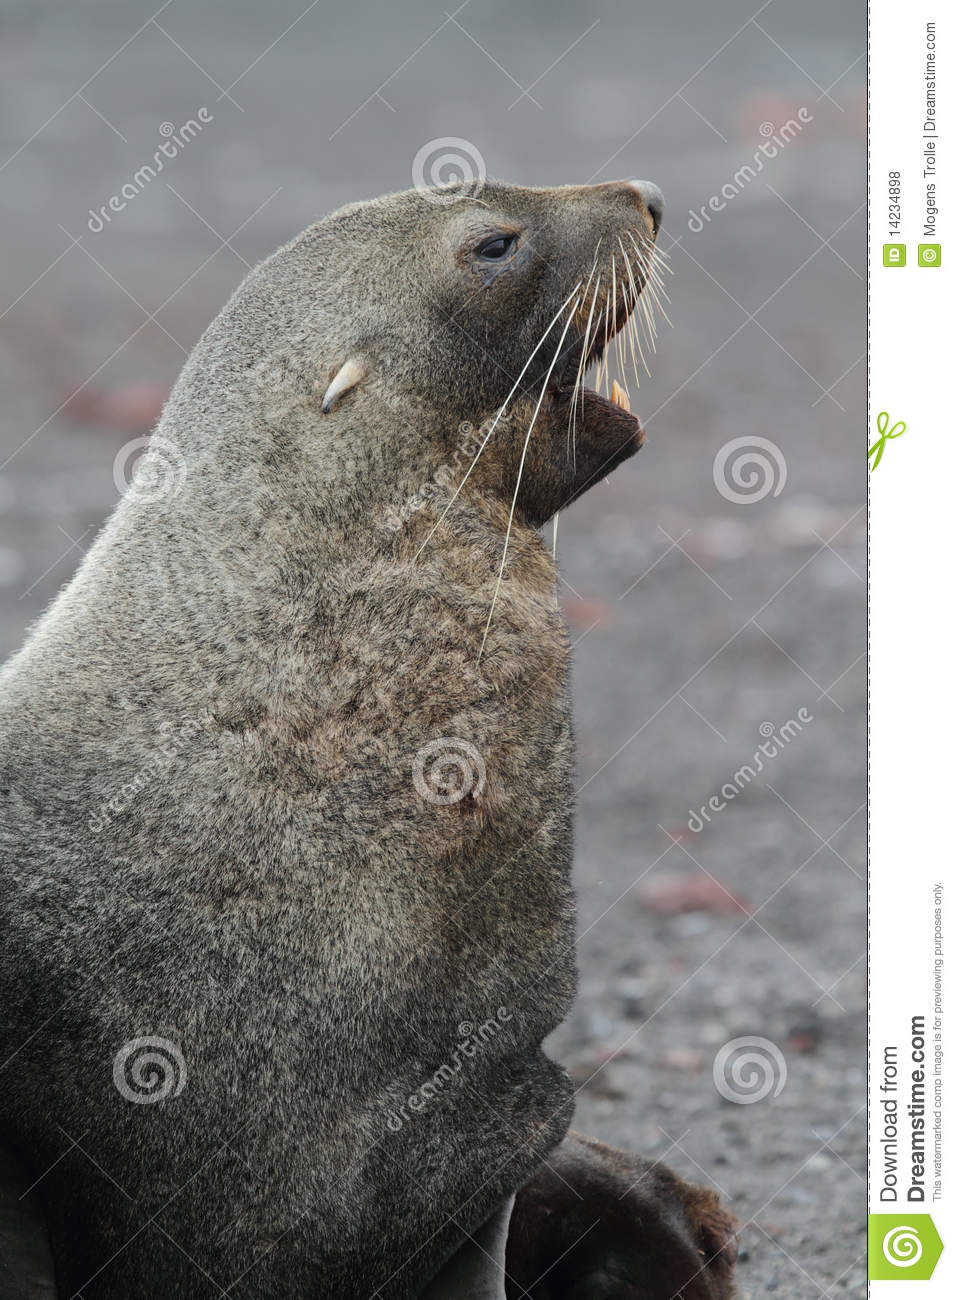 antarctic fur seal essay The other common name, kerguelen fur seal, is seldom used antarctic fur seals are part of the group arctocephalinae and evolved to their present form in the past 2–3 million years there are many similarities between antarctic fur seals and the other arctocephalinae, and they can be confused with most other southern fur seals, particularly.